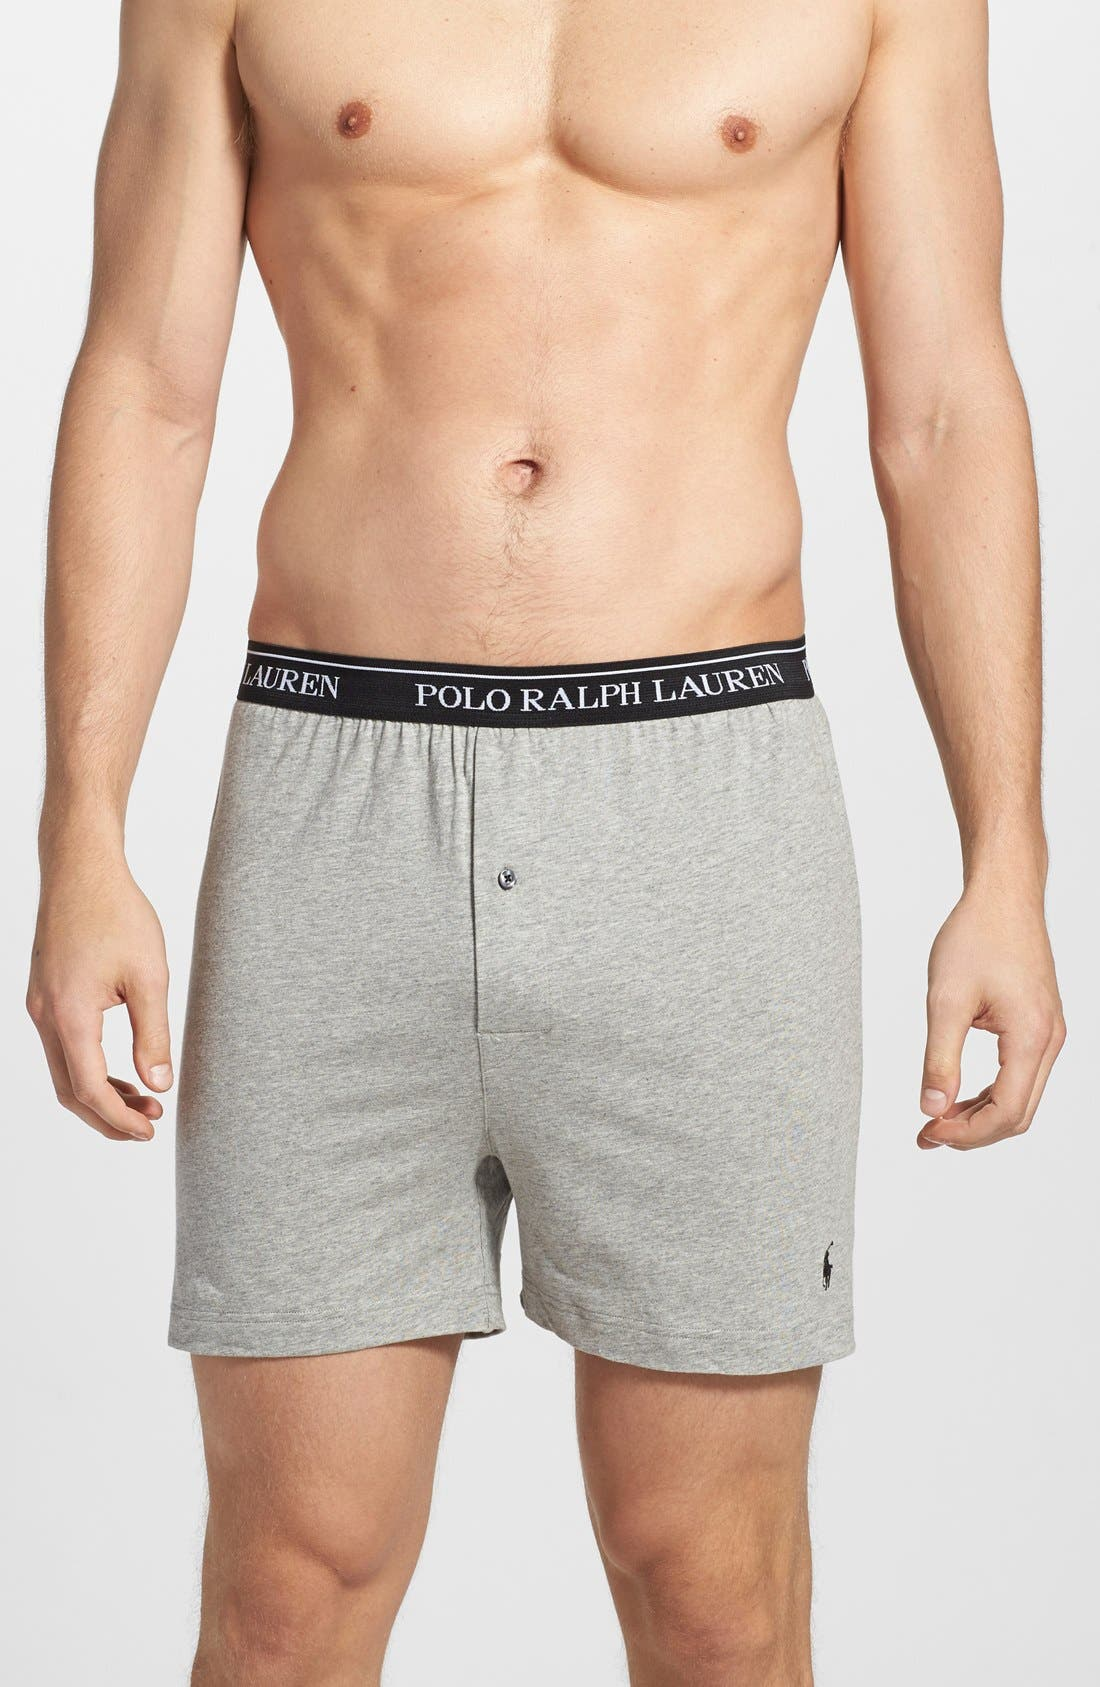 3-Pack Boxers,                             Alternate thumbnail 3, color,                             BLACK/ GREY ASSORTED